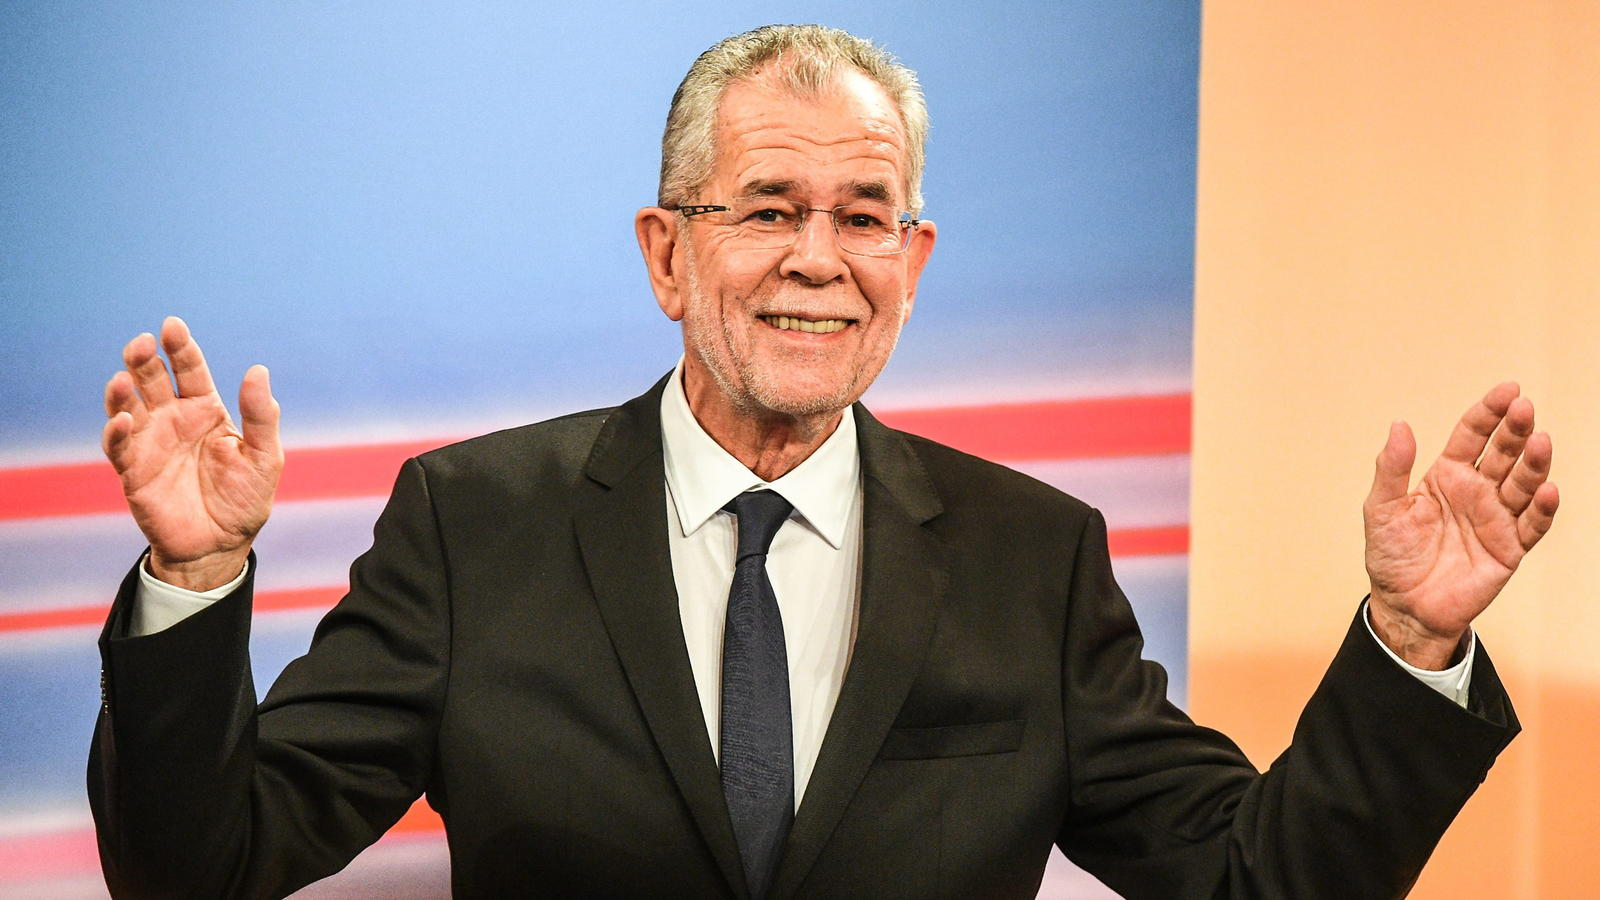 epa05659942 Austrian presidential candidate and former head of the Austrian Green Party, Alexander Van der Bellen gestures at a TV interview at the Hofburg palace after polls closed in the re-run of the Austrian presidential elections run-off in Vien